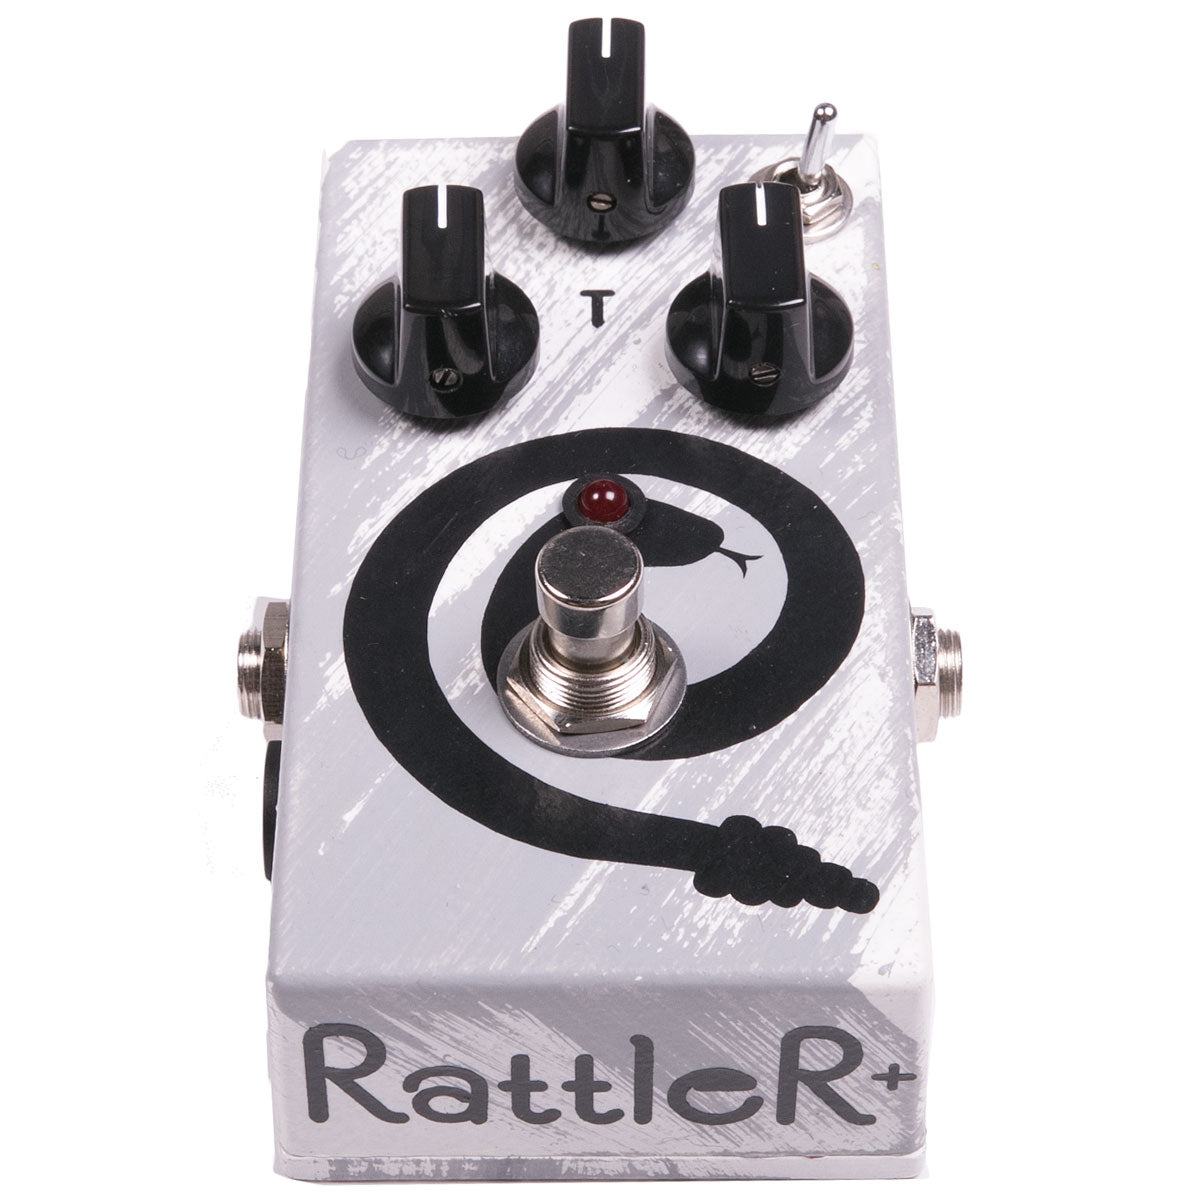 JAM Rattler Plus Distortion